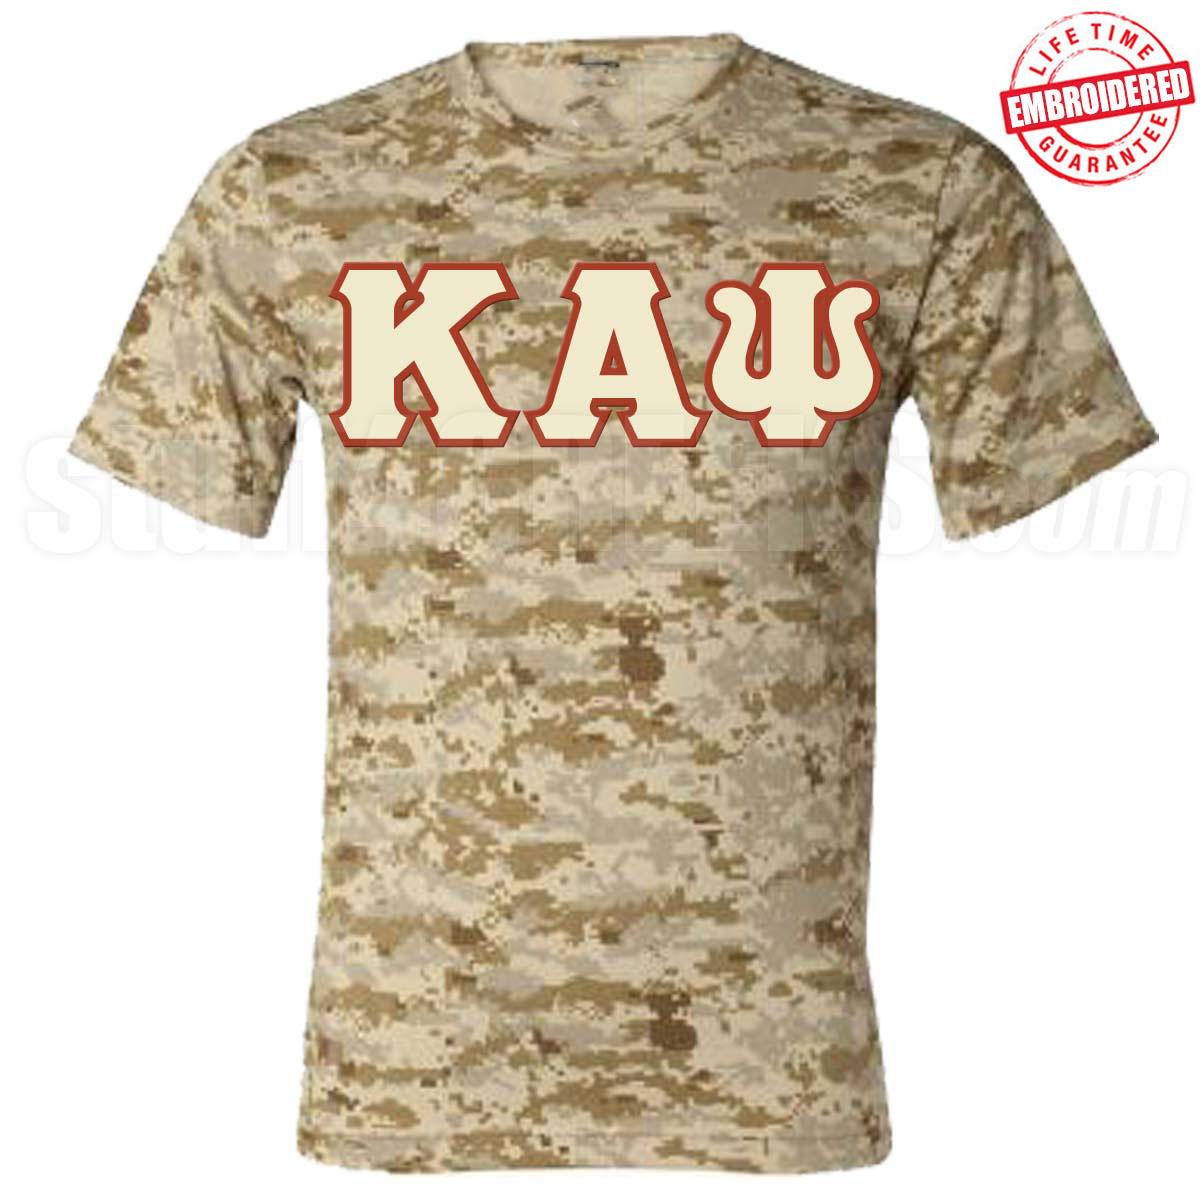 Greek Letter Before Kappa.Kappa Alpha Psi Greek Letter T Shirt Sand Camouflage Embroidered With Lifetime Guarantee